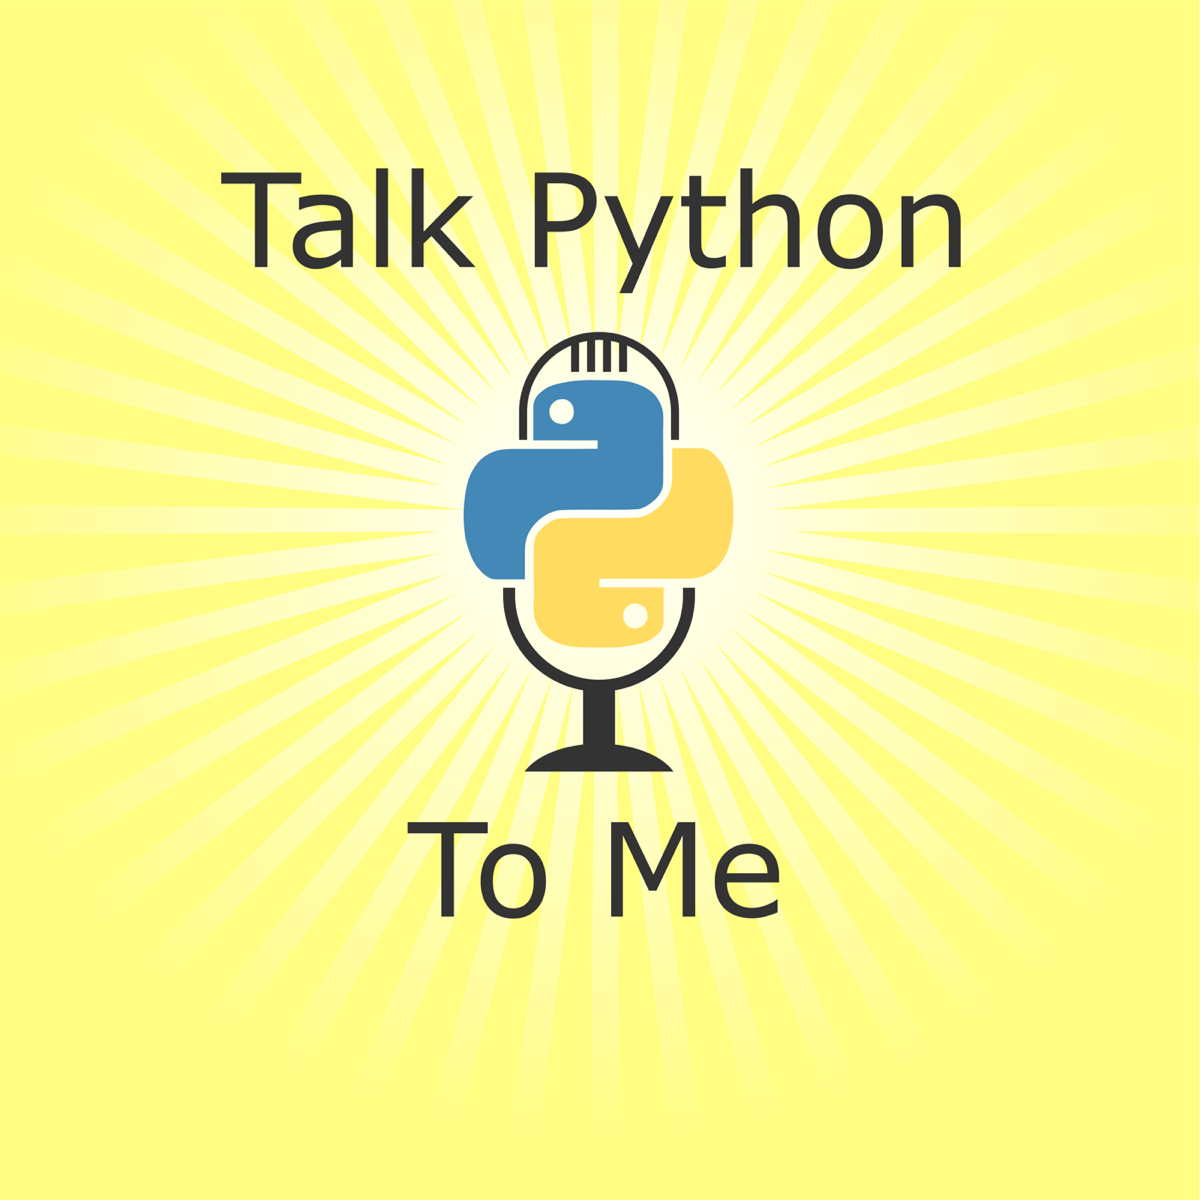 Best episodes of talk python to me python conversations for best episodes of talk python to me python conversations for passionate developers on podyssey podcasts fandeluxe Gallery